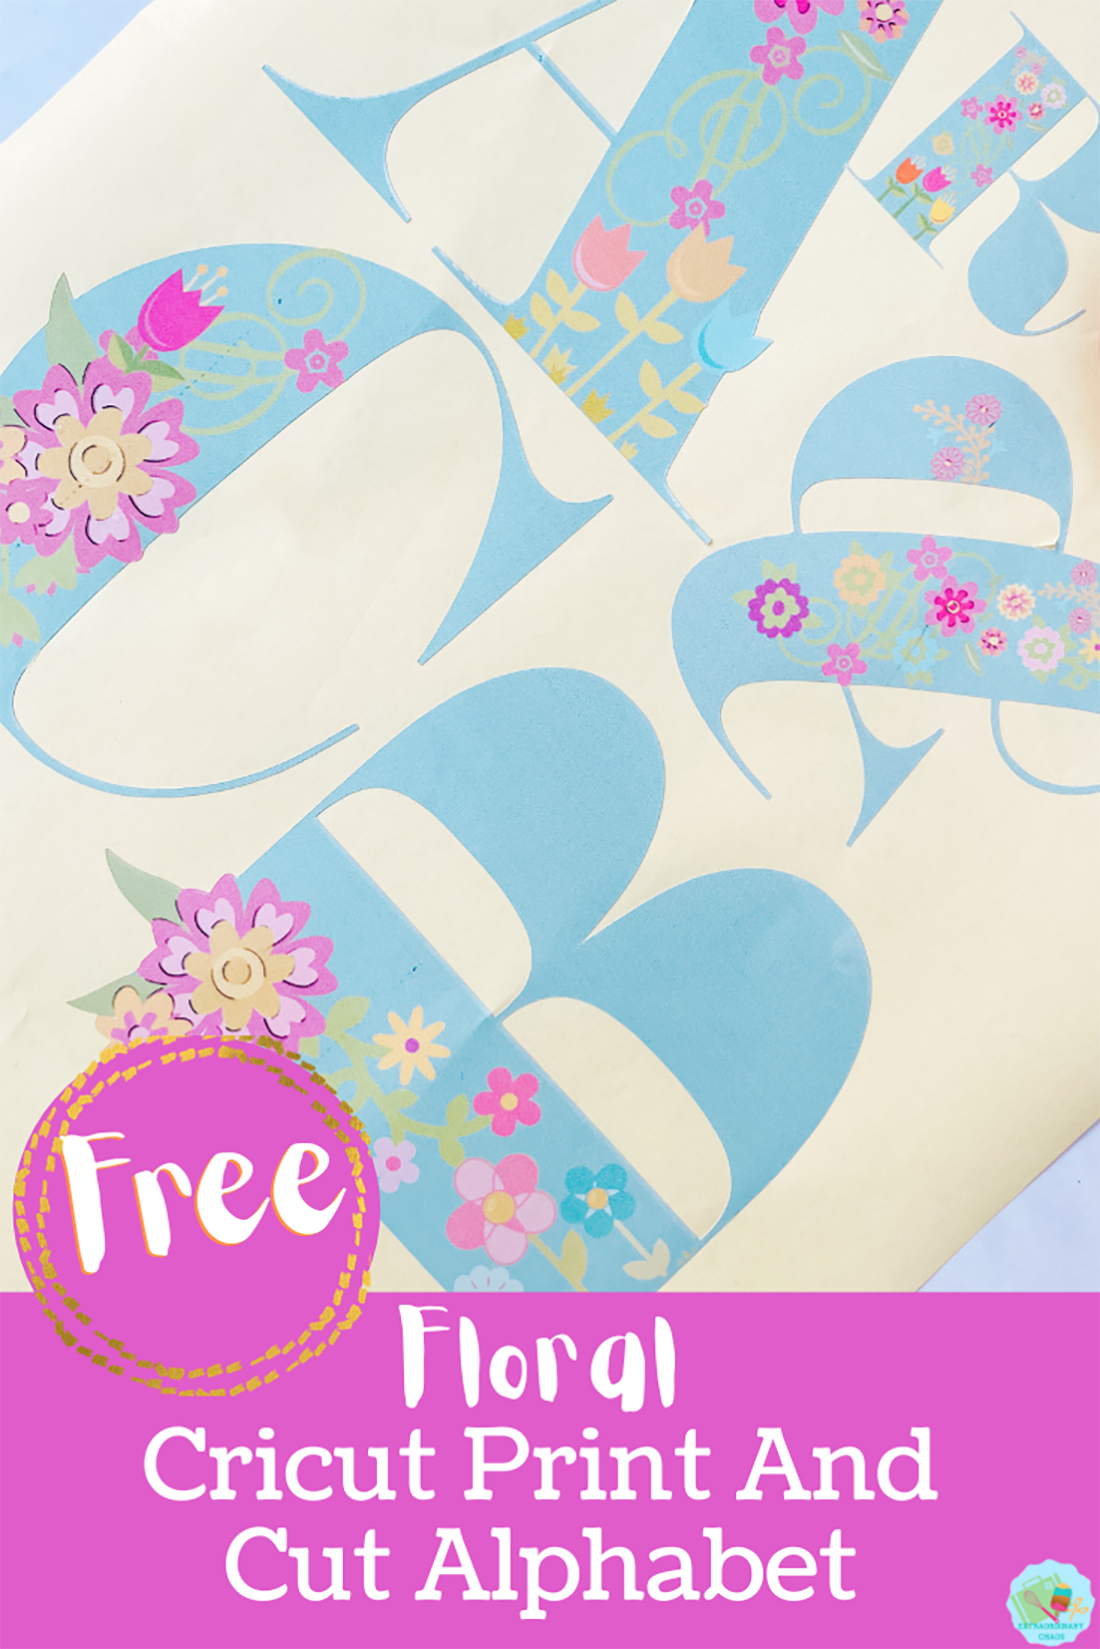 Free downloadable Floral print and cut Alphabet and Numbers for crafting with kids, planners, home decor and bullet journals